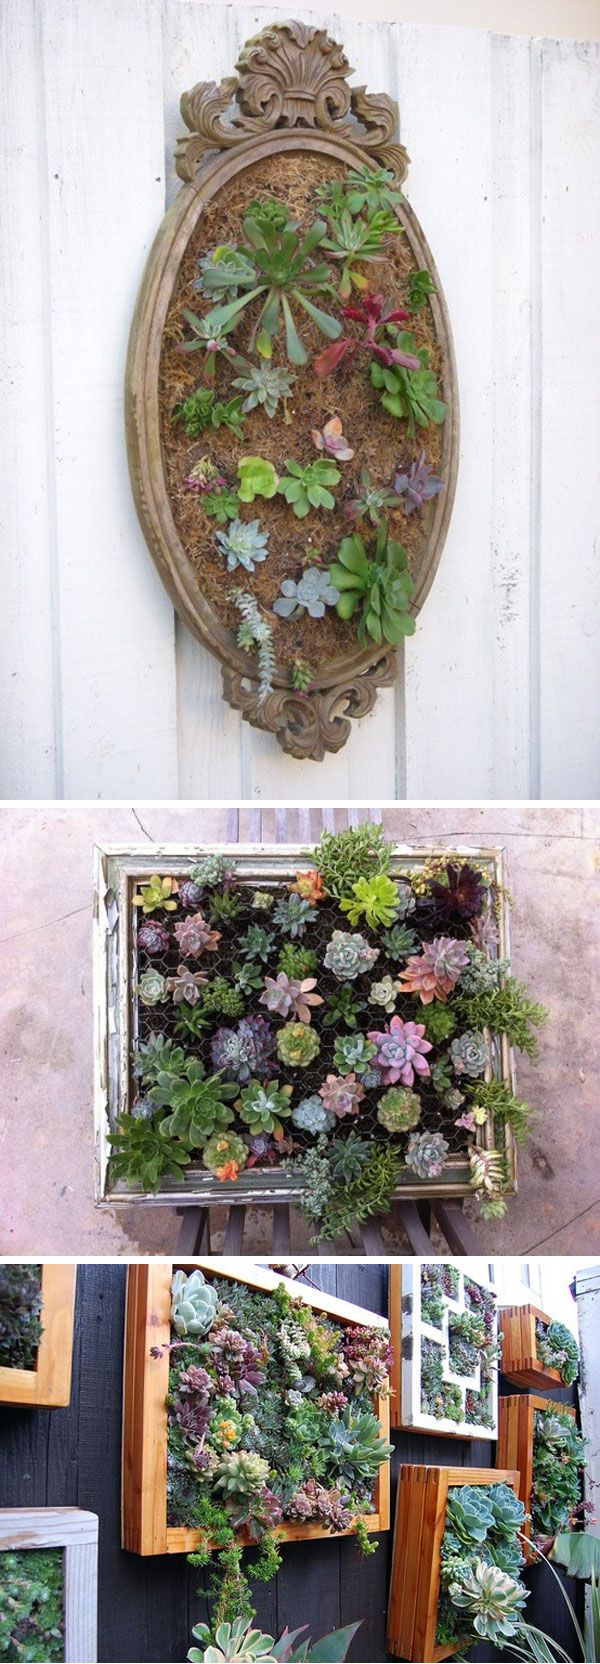 framed succulents cute idea for a backyard garden: Idea, Succulent Frame, Living Wall, Outdoor, Vertical Gardens, Wall Gardens